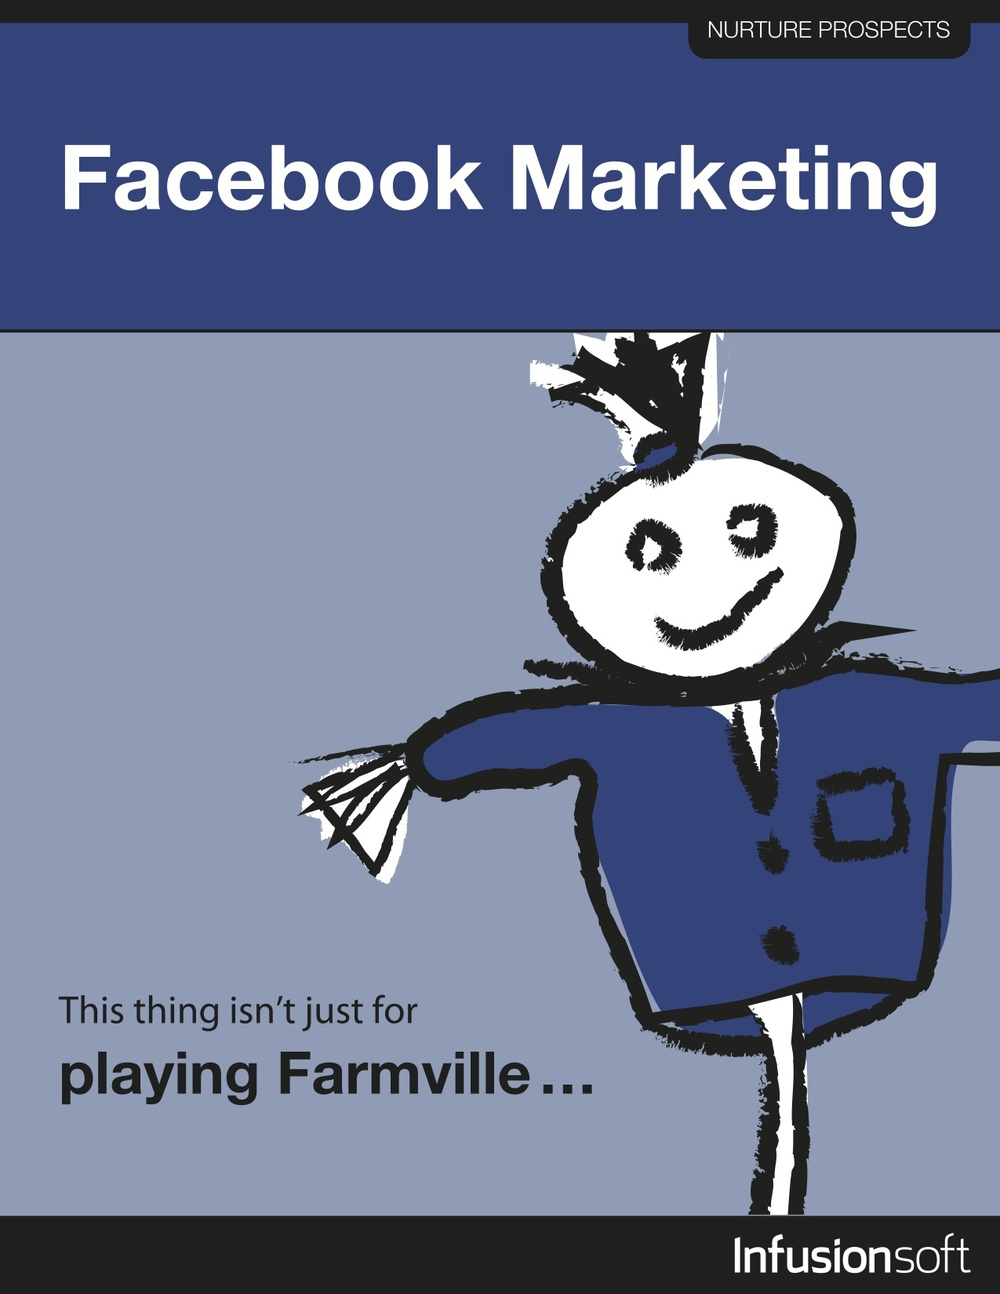 What You'll Learn:    This growth strategy is an overview that will set the stage for big advances with Facebook marketing. You'll learn:    	  		Why Facebook might be way more powerful than Twitter  	  		How to set up a business page  	  		How to optimize your Facebook landing page  	  		Much more!       Excerpt:   There are 500 million users on Facebook, and according  to insidefacebook.com, over half of those users are between the ages of  26 and 54. That's a pretty big sweet spot for marketing...     Download Now      Sourced From:  Infusionsoft